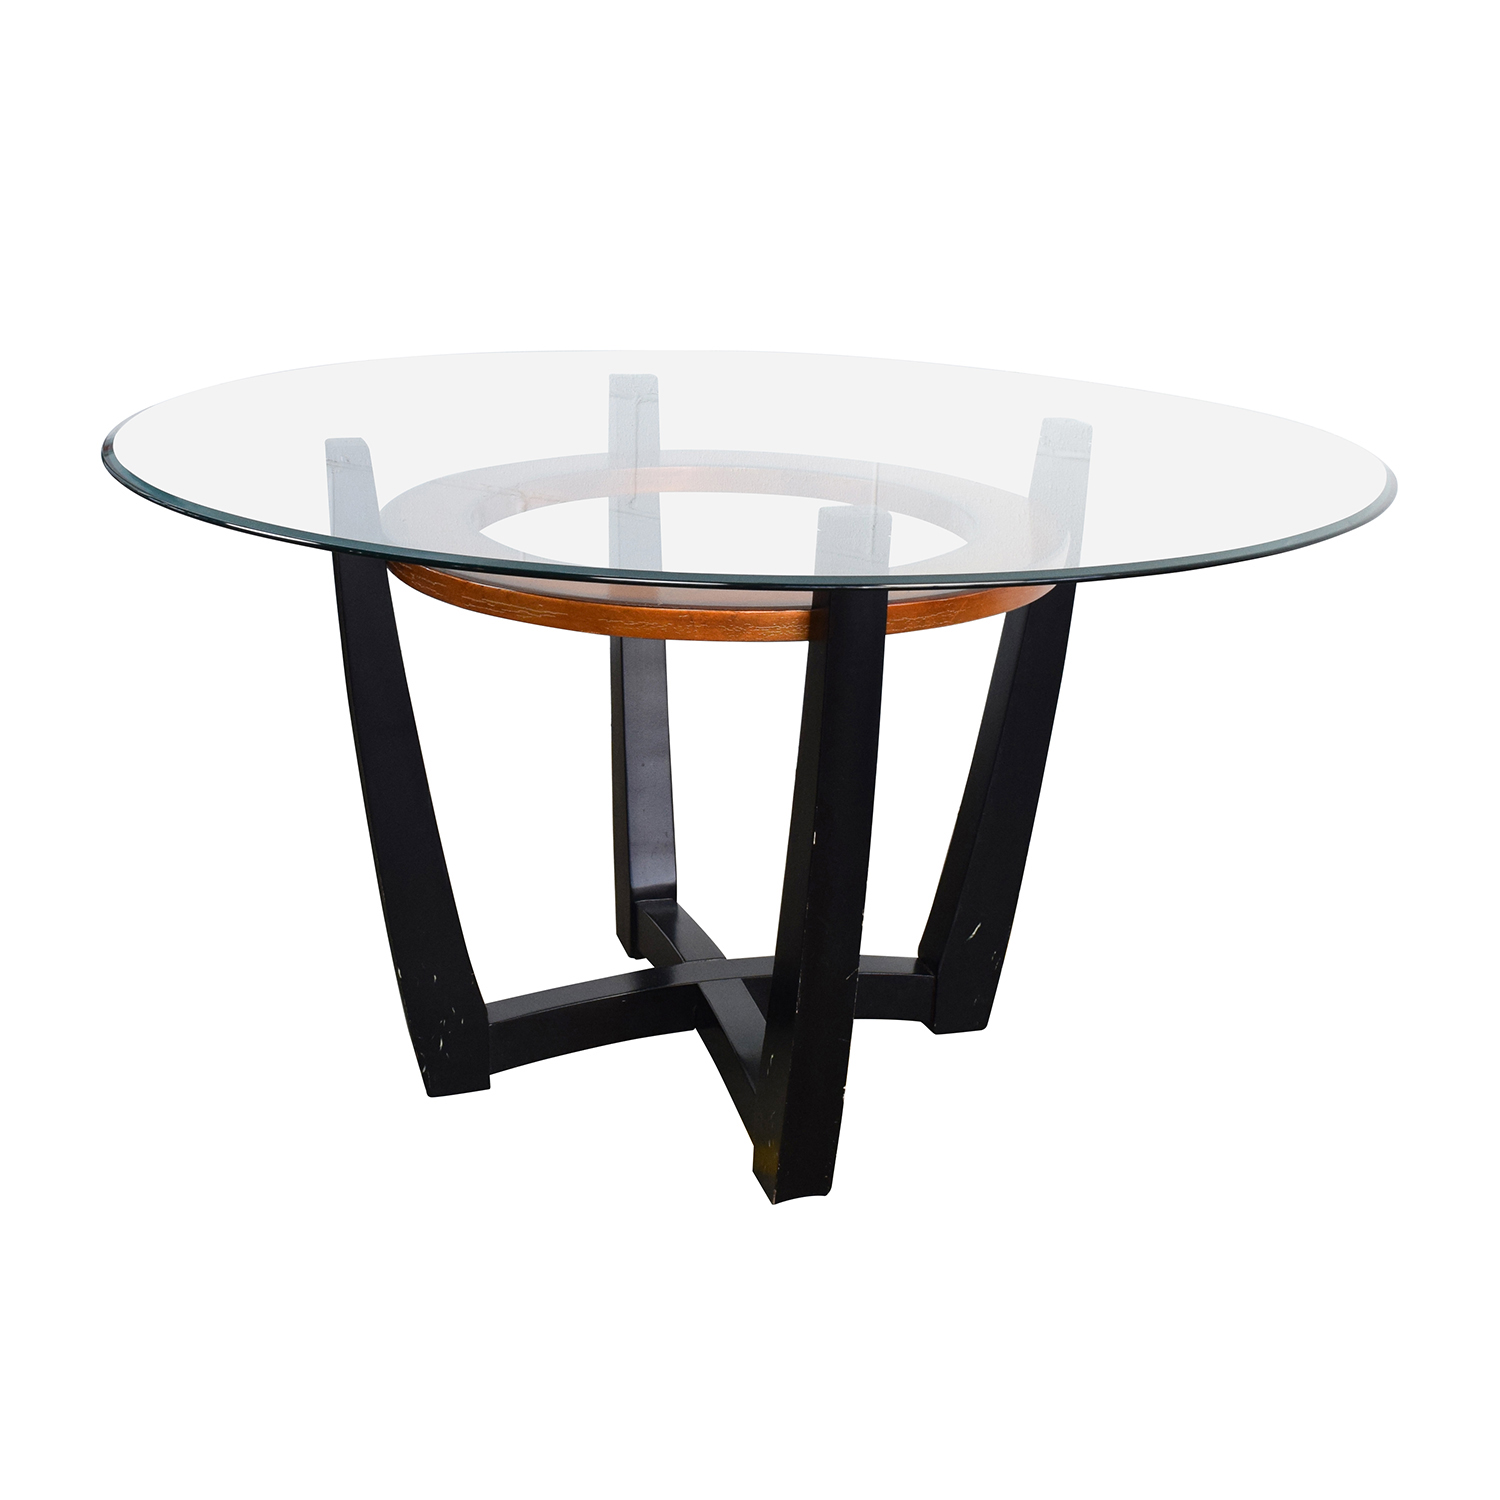 Macys Furniture Nyc: Macy's Macy's Elation Round Glass Dining Table